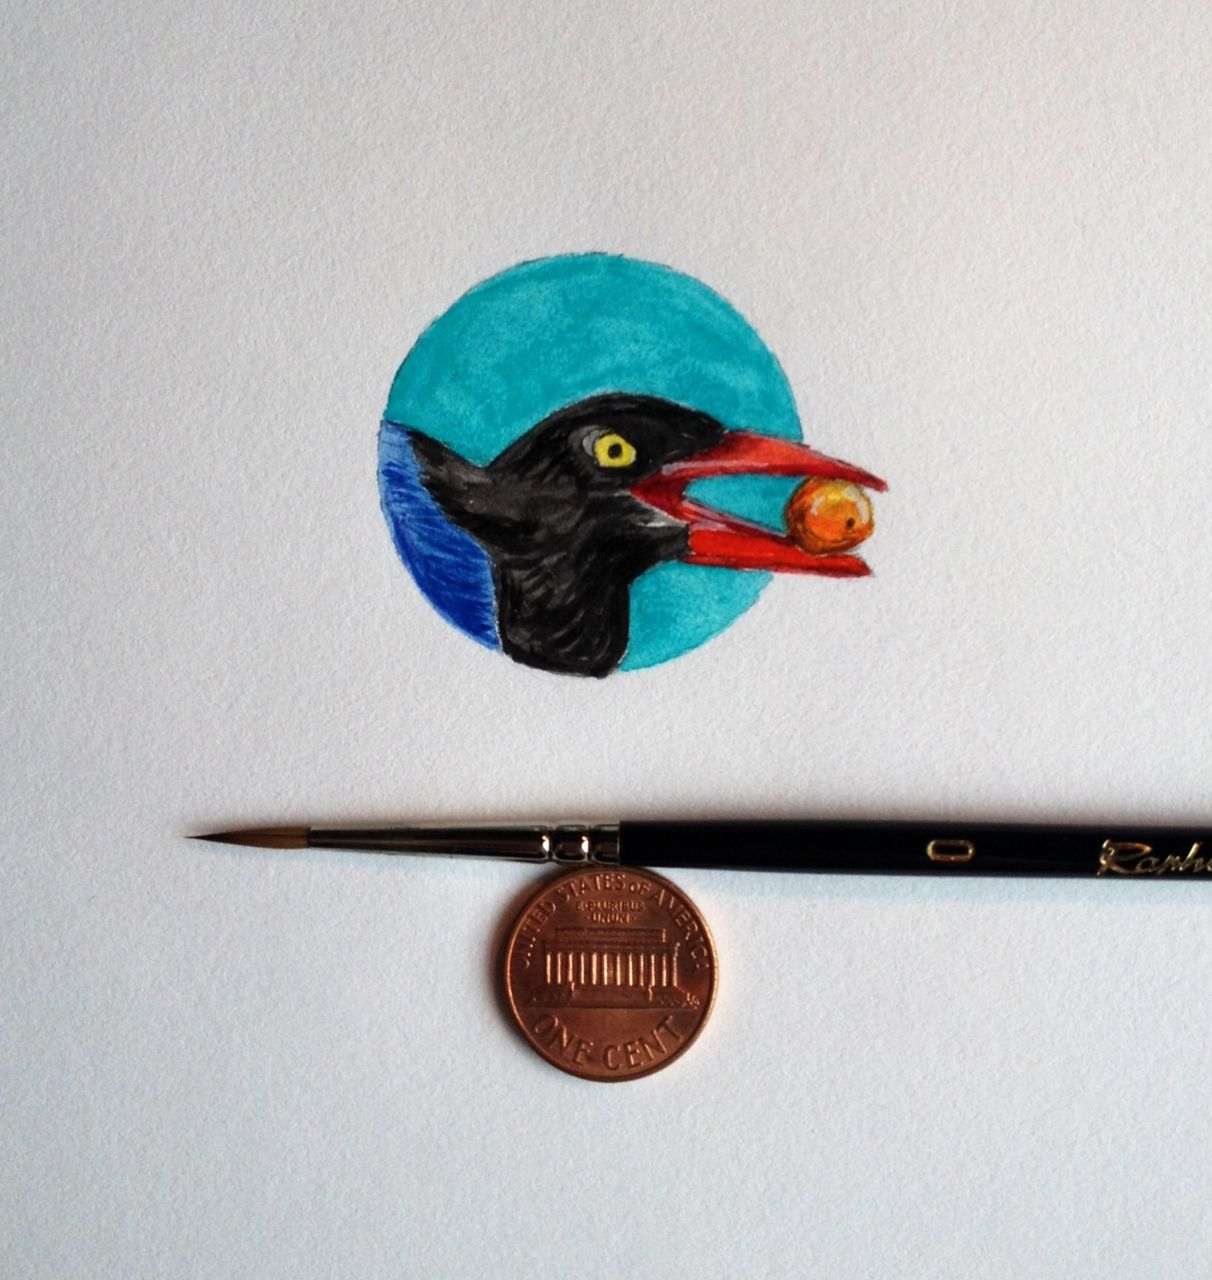 Bird Bit test 3. Starting January 2015 I'll be posting one painting a day on my public Facebook page, BIRD BITS 2015